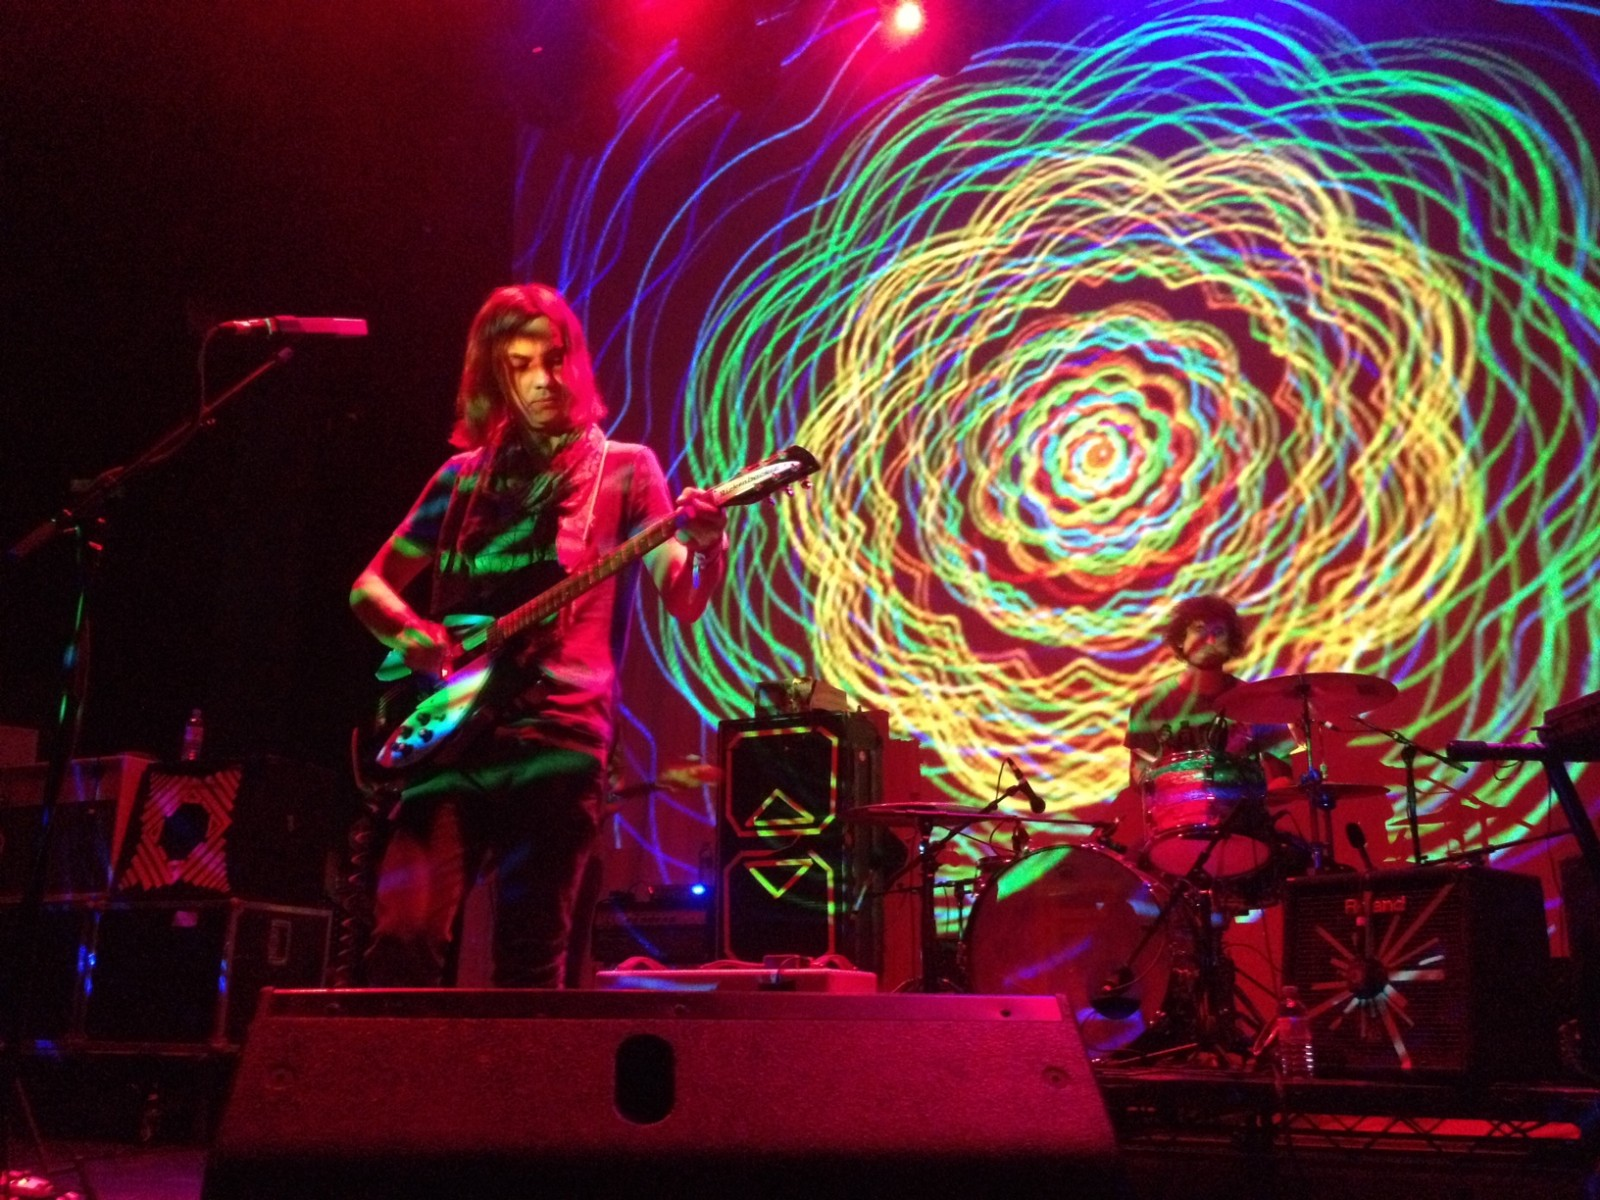 GIG REVIEW: Tame Impala at Edinburgh Picture House